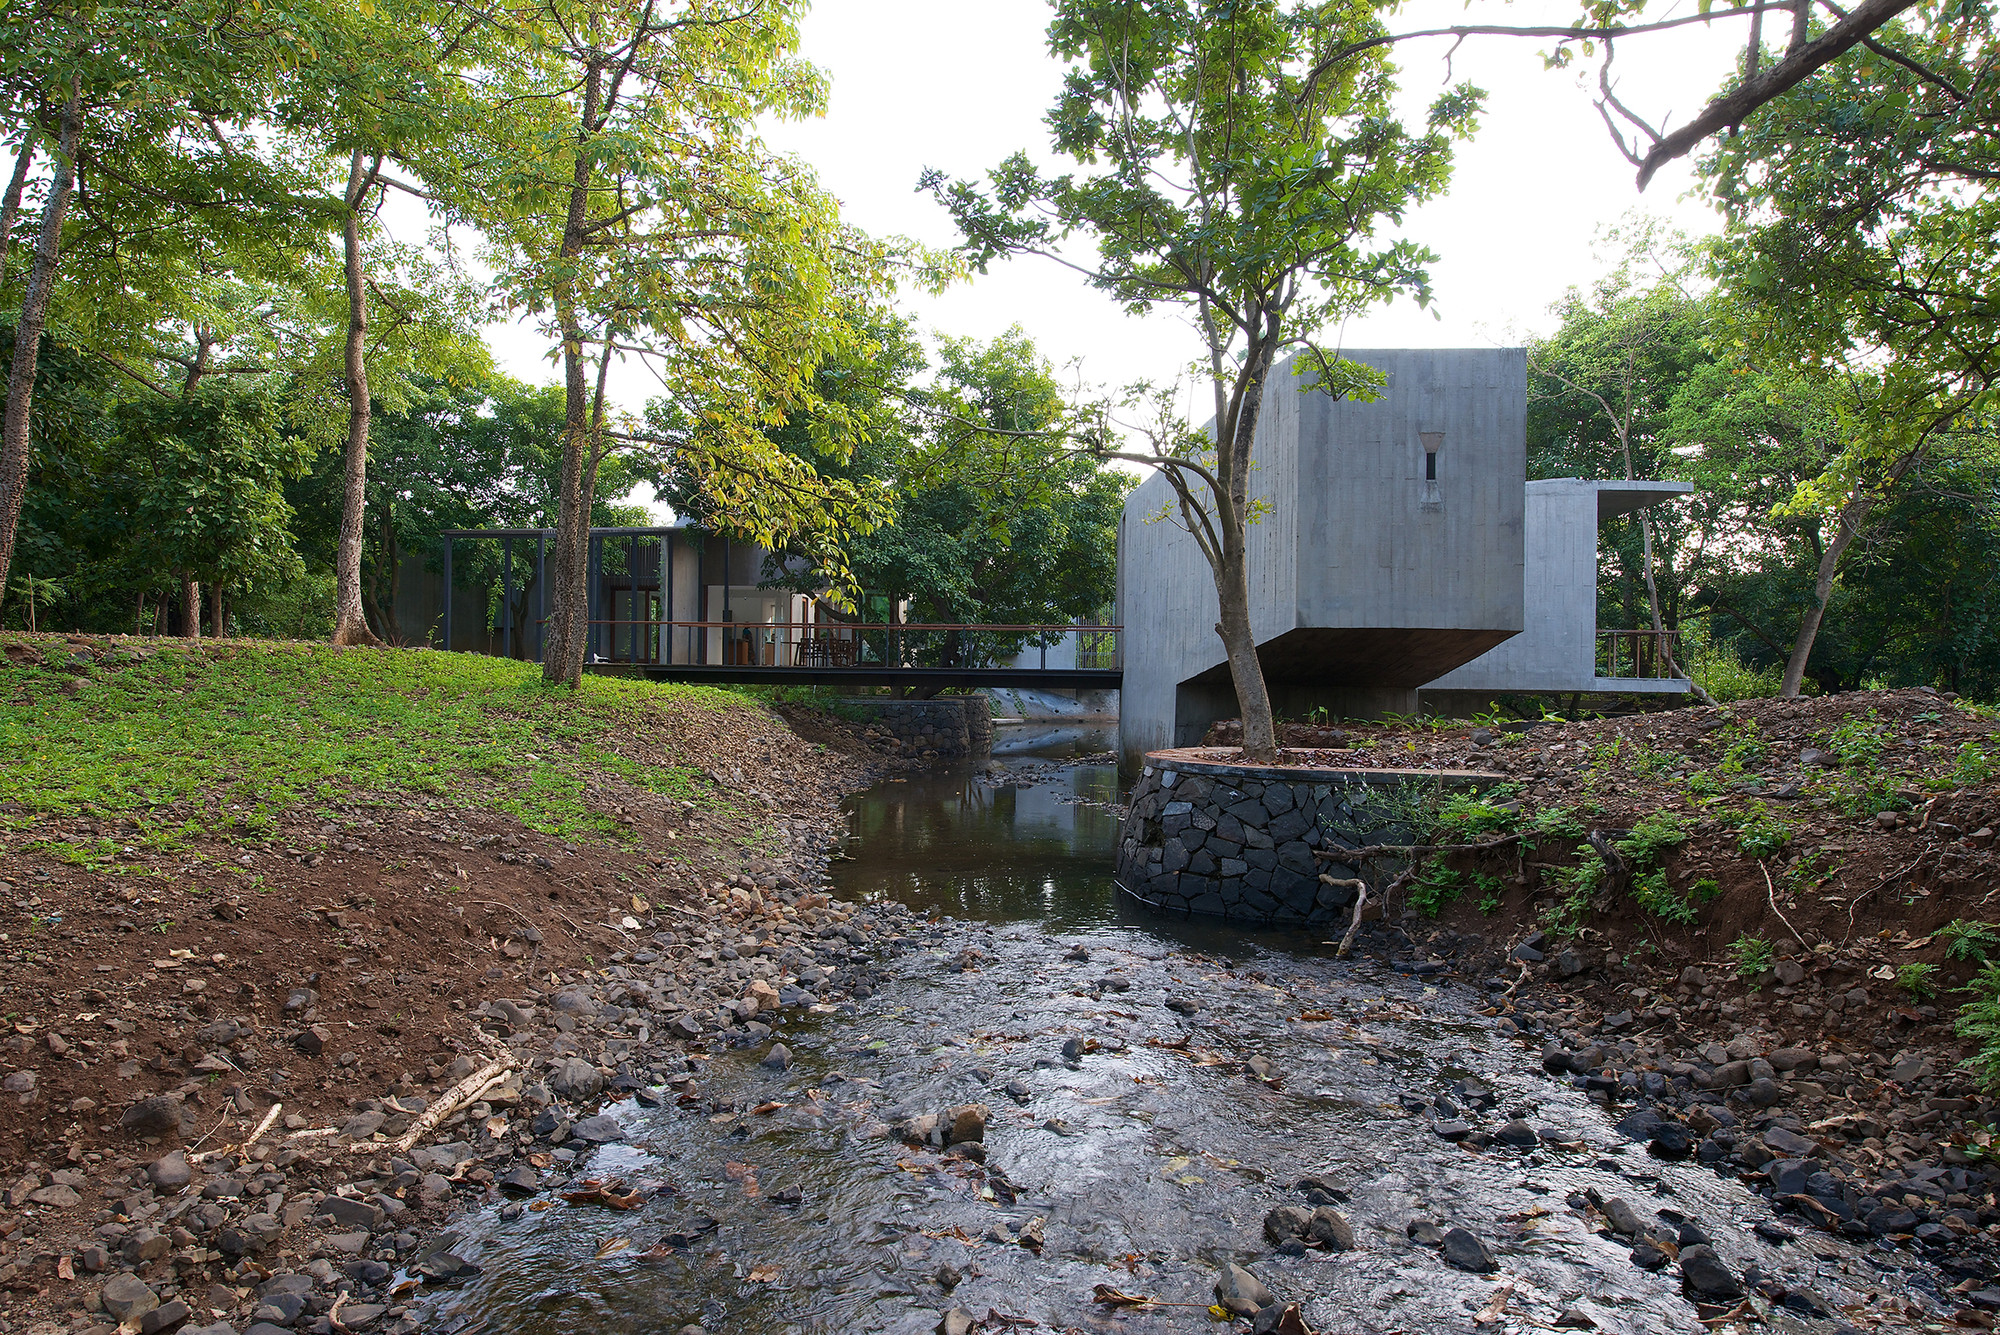 House on a Stream / Architecture BRIO, © Sebastian Zachariah